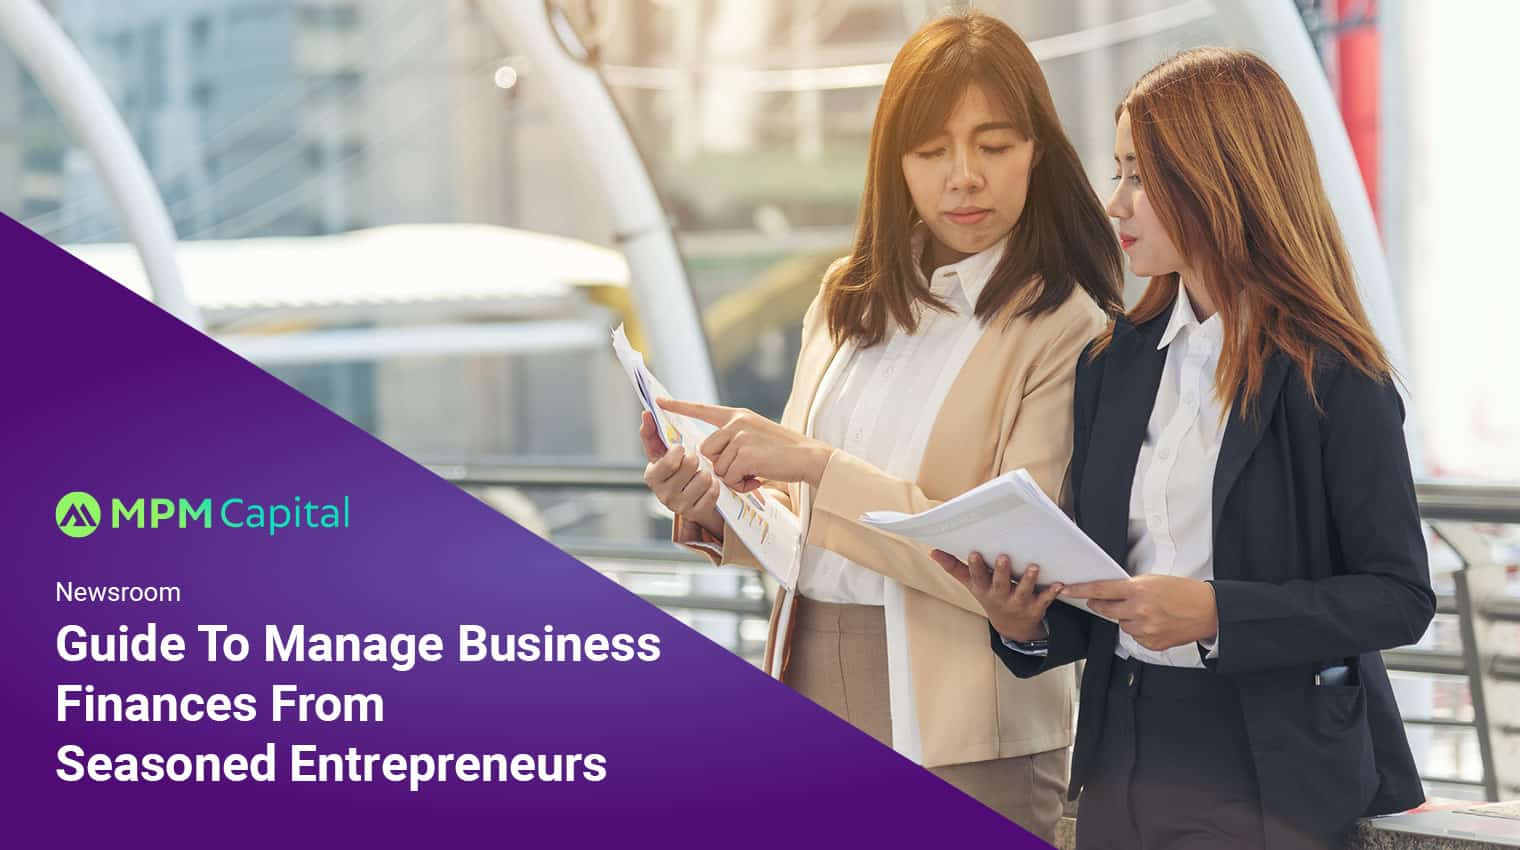 Guide-To-Manage-Business-Finances--What-Seasoned-Entrepreneurs-Want-You-To-Know-(Singapore)MPM-Capital